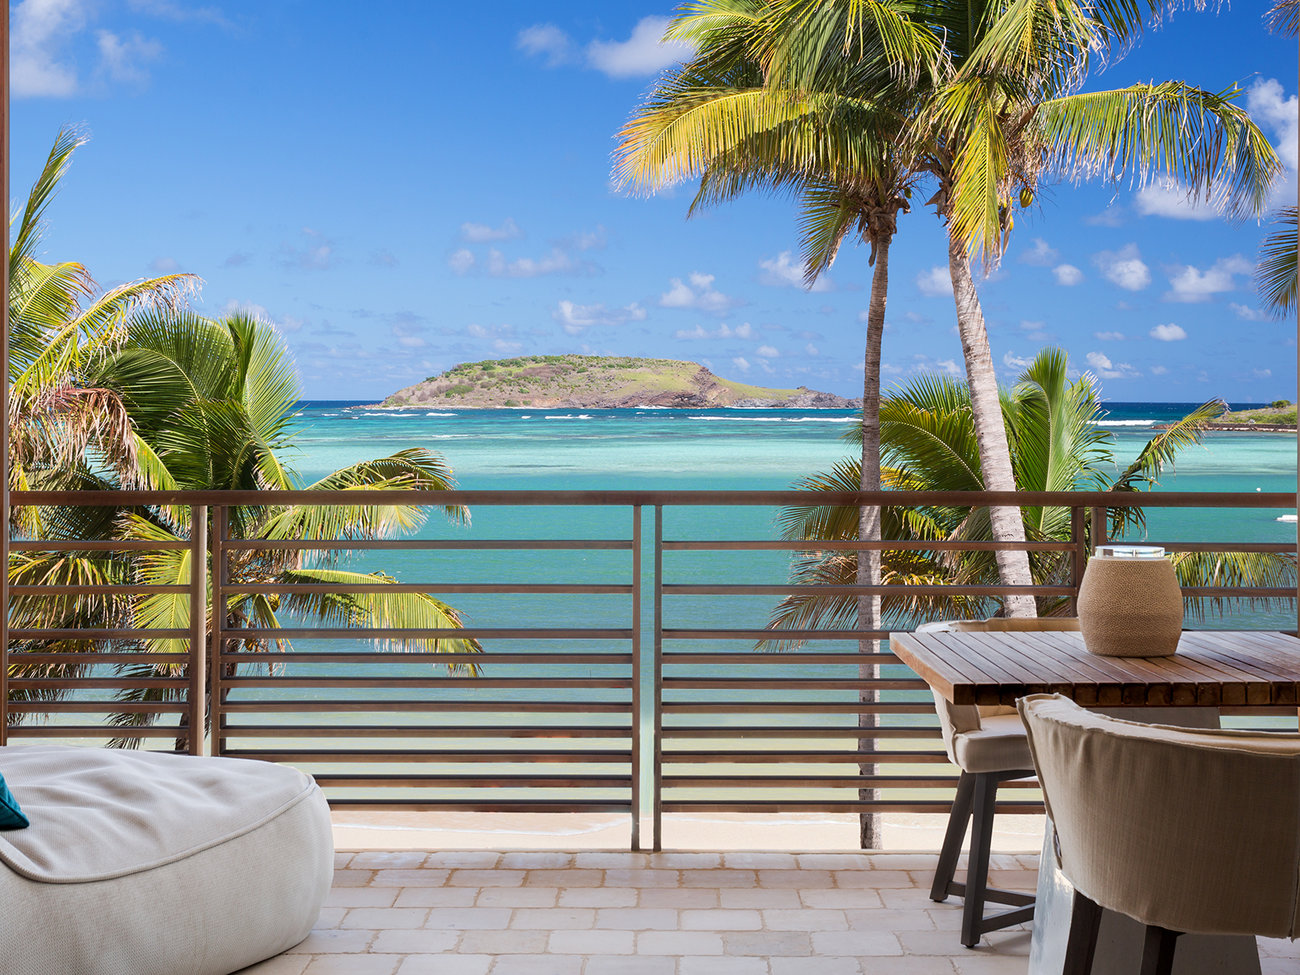 La Spa at Le Barthélemy in St. Barts